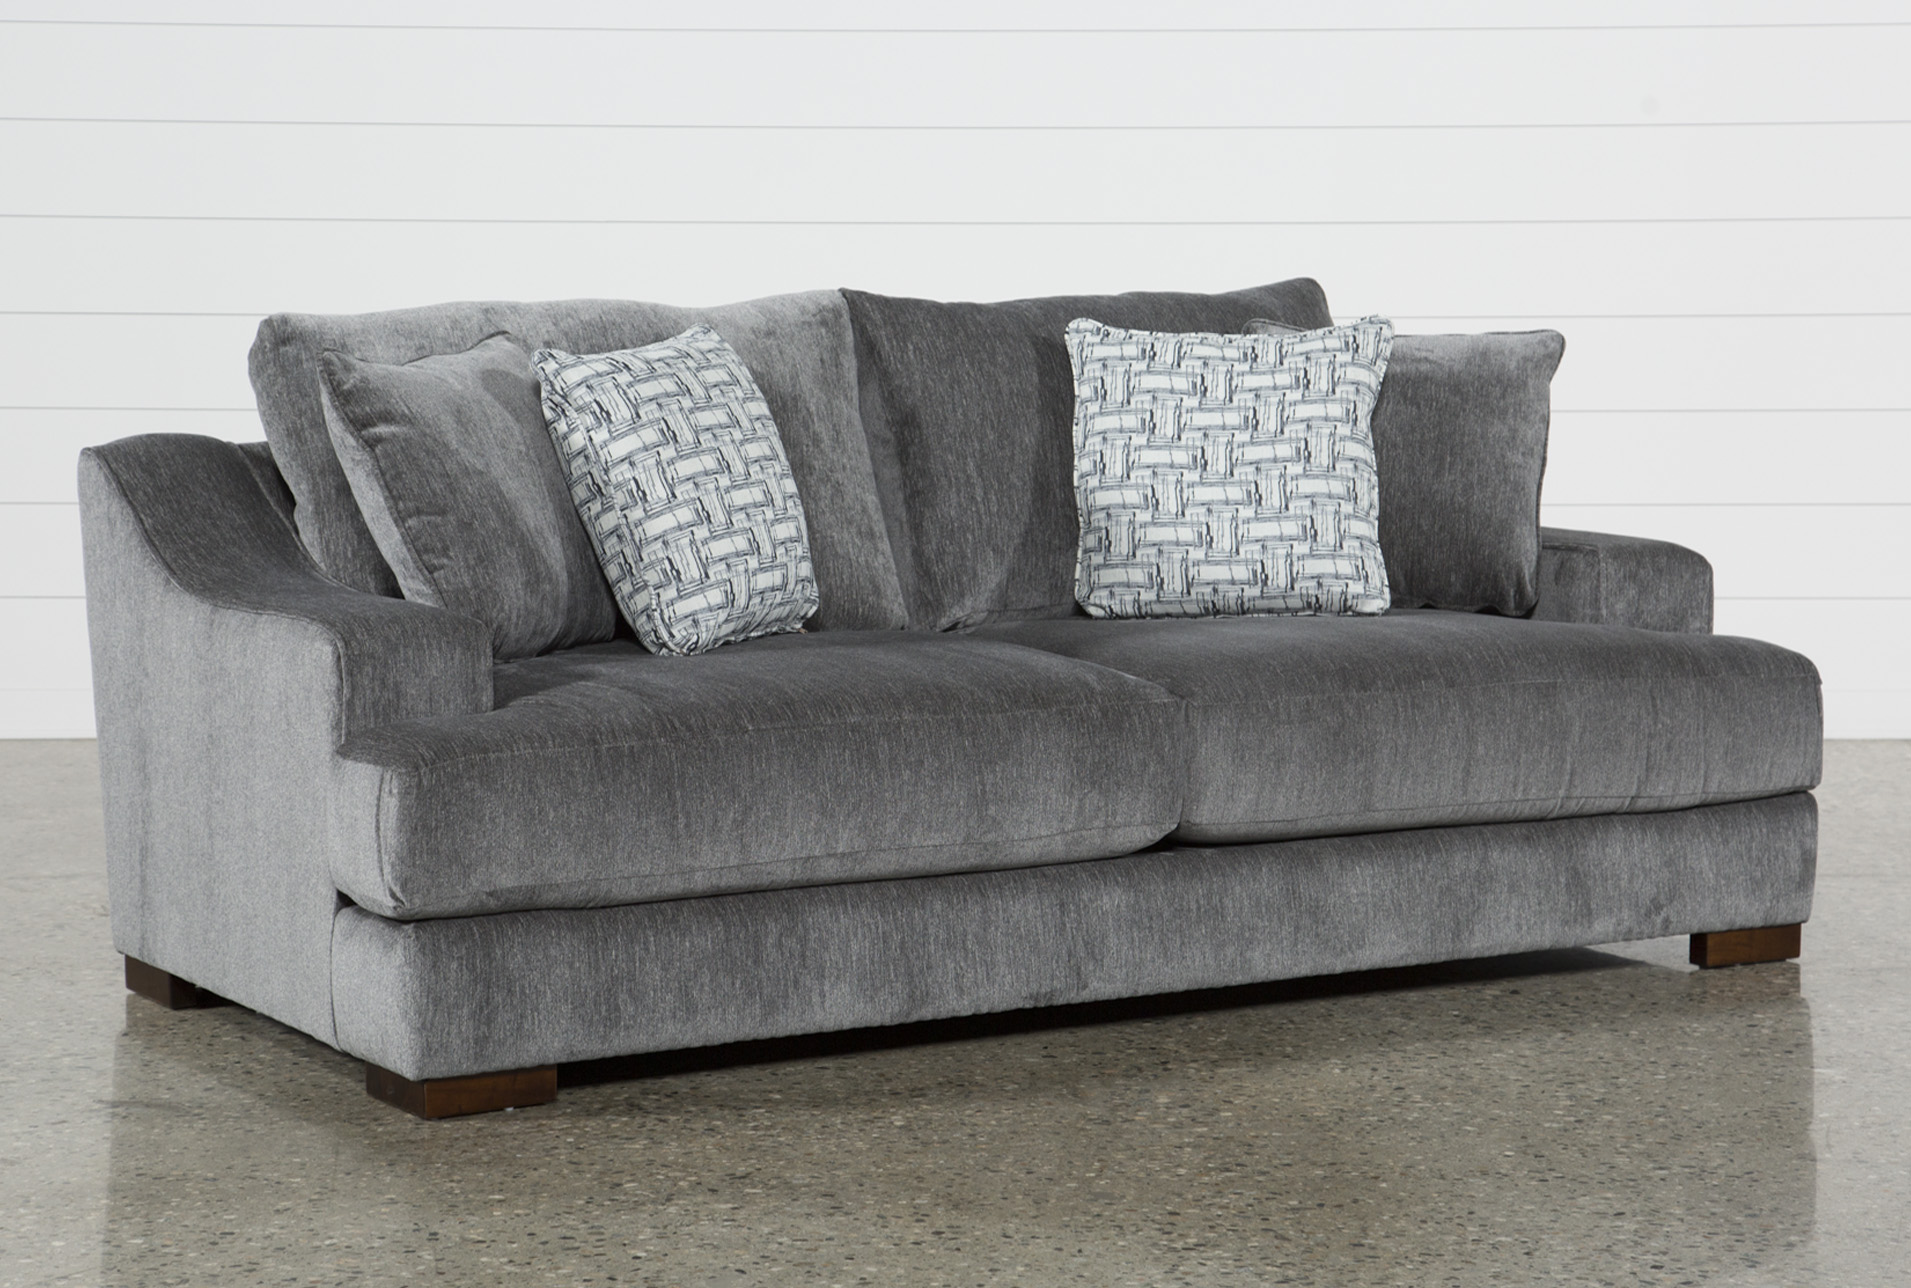 Grey Transitional Sofas & Couches - Free Assembly with Delivery